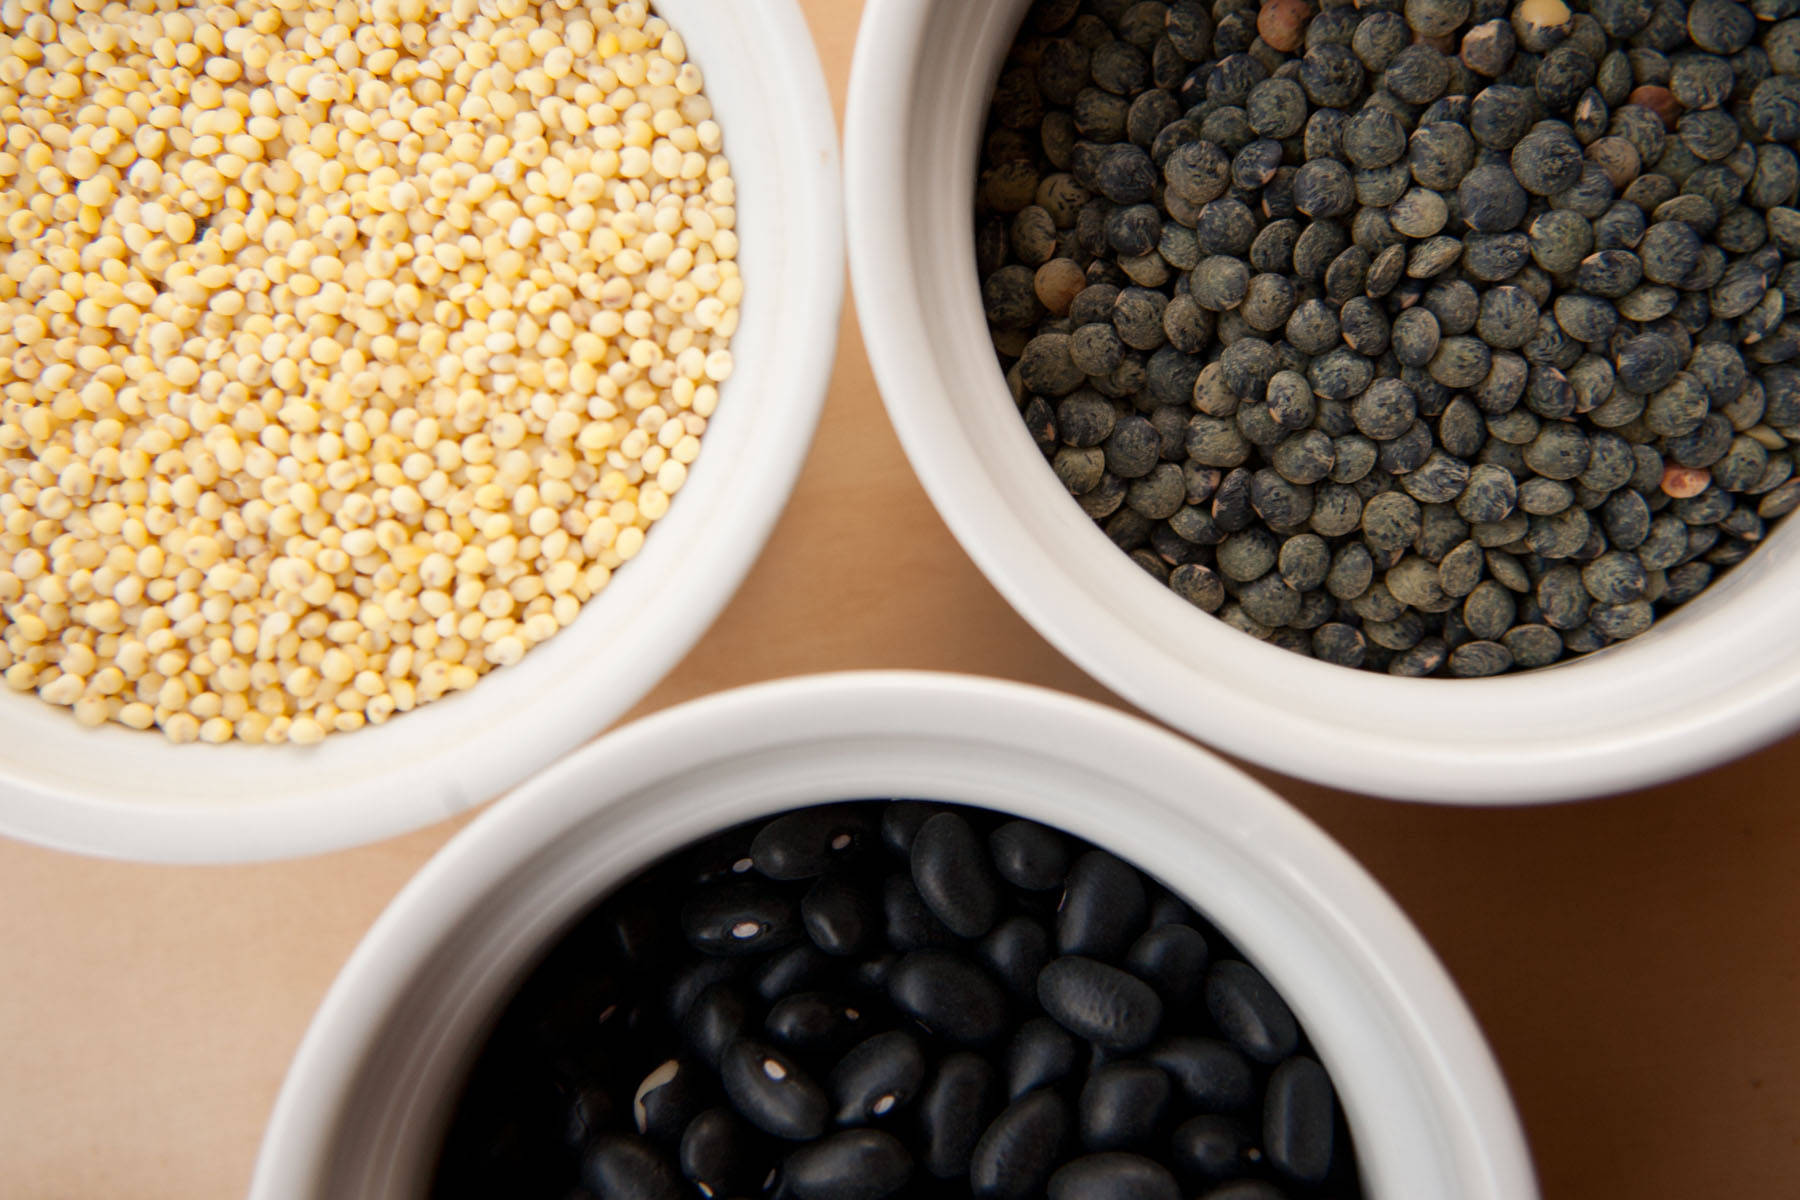 Grains beans and pulses